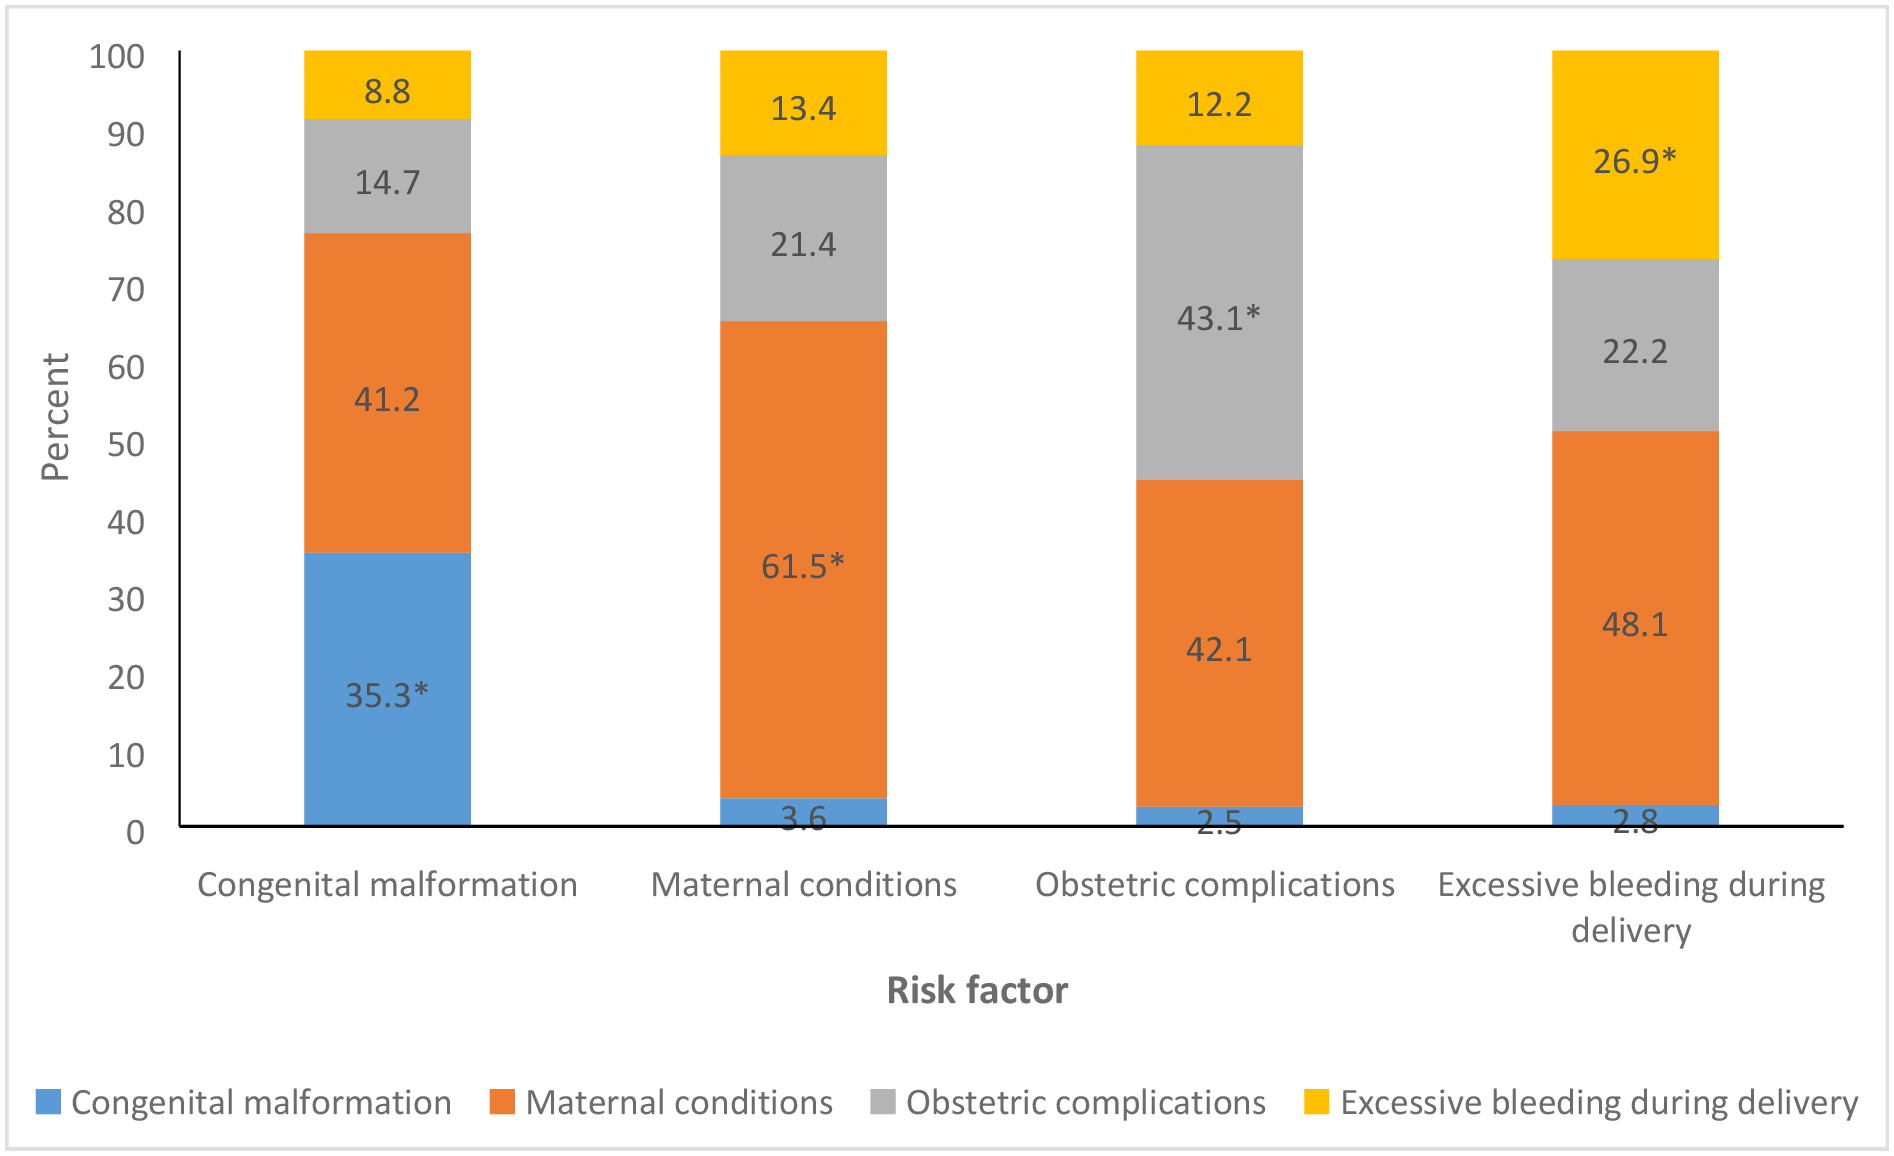 The distribution of the overlap between the various possible risk factors for stillbirth in the Indian state of Bihar.